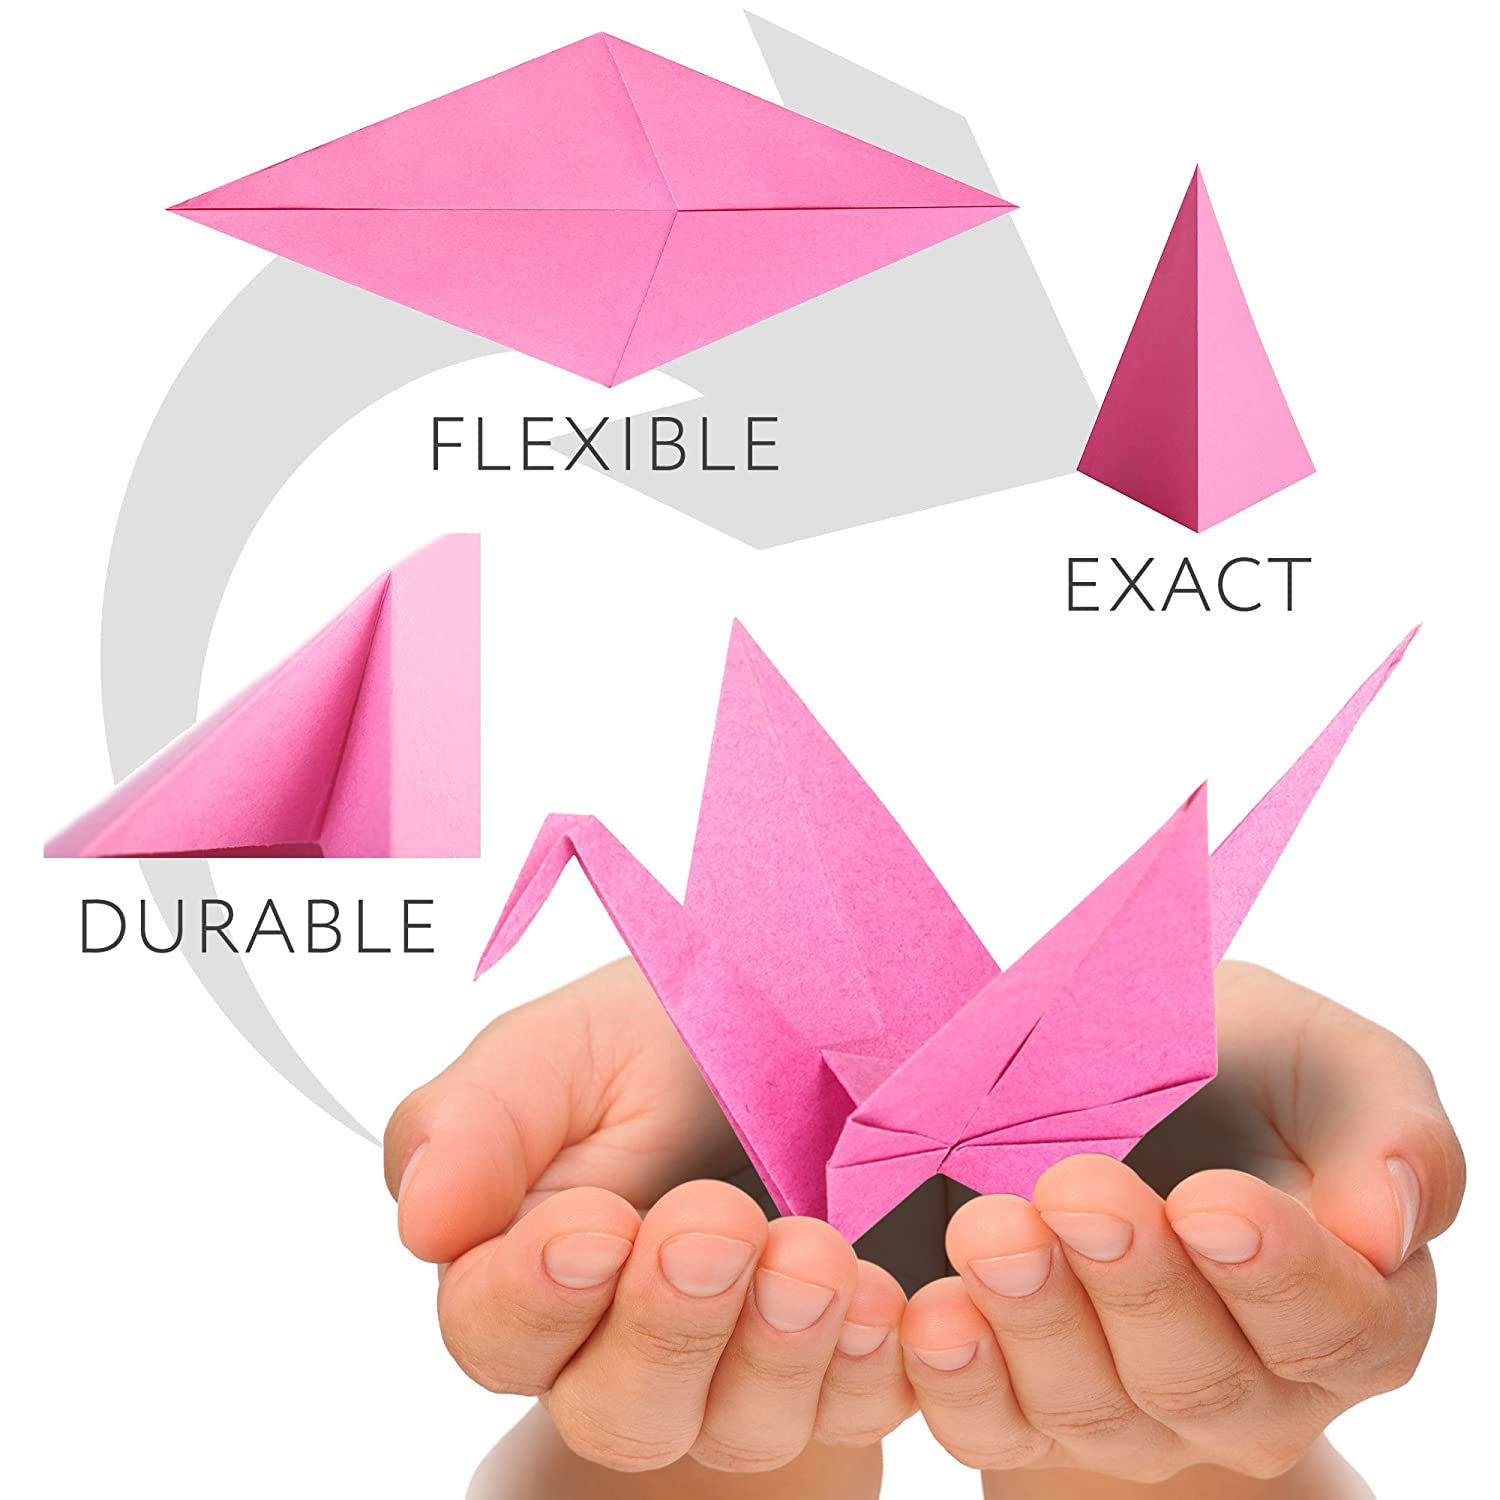 Classic Origami Paper 750 Sheets Economy Pack In 3d Small Swan Assembly Diagram For Beginner Tutorial Protective Tray Square 6 Inch 25 Vivid Colors 70 Gsm Original Product